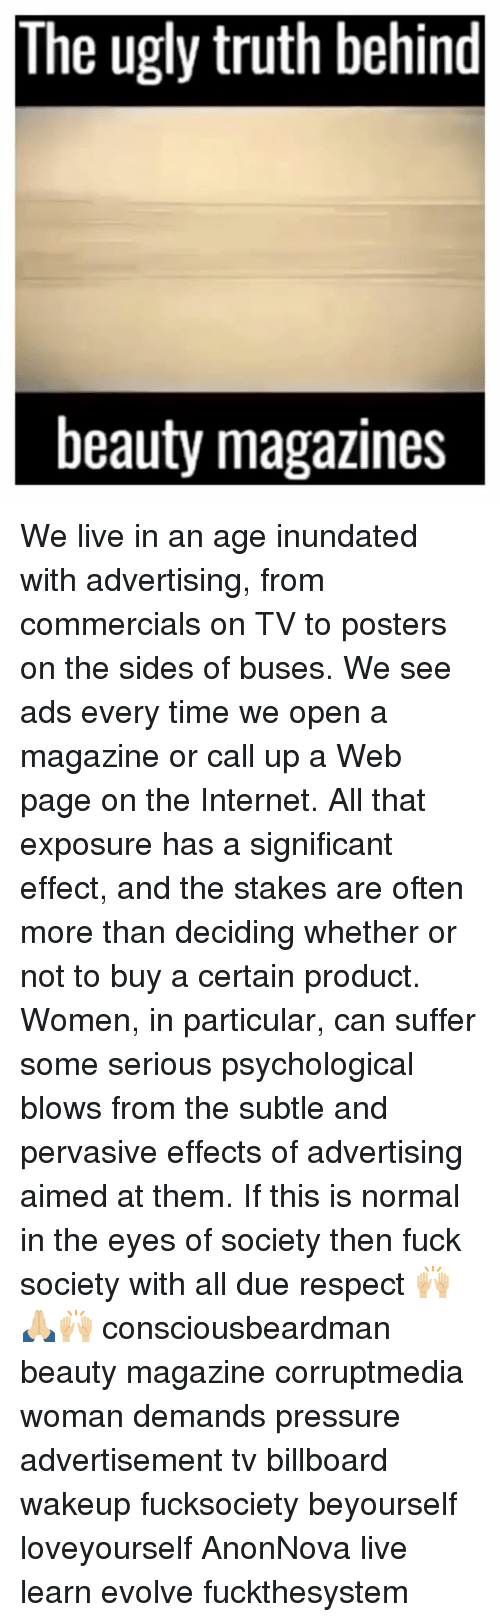 the ugly truth behind advertising